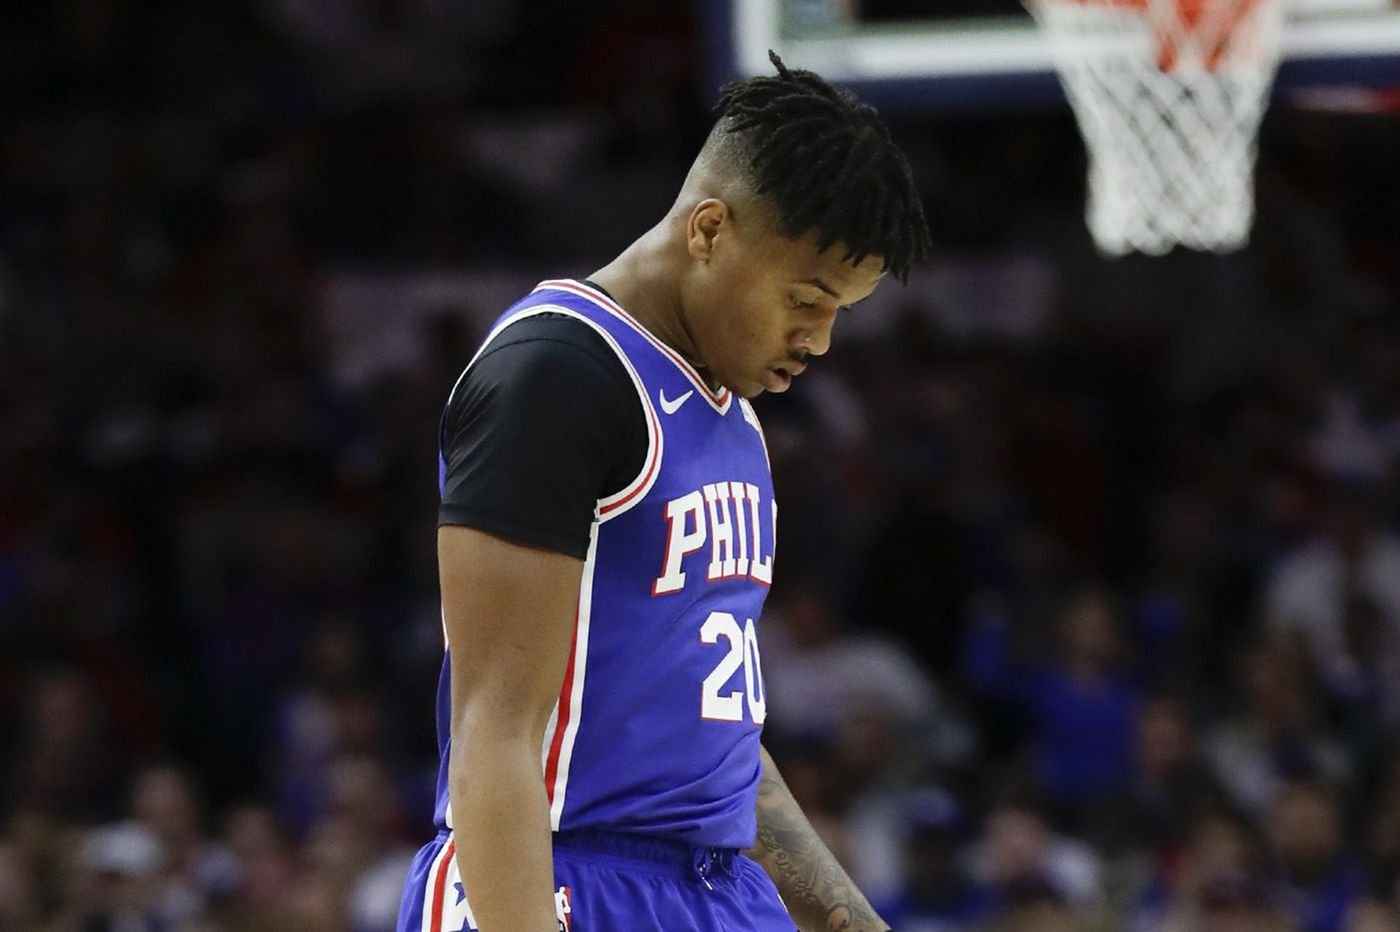 A Bleacher Report story accuses Philadelphia of hating Markelle Fultz, and gets everything about the city wrong | David Murphy